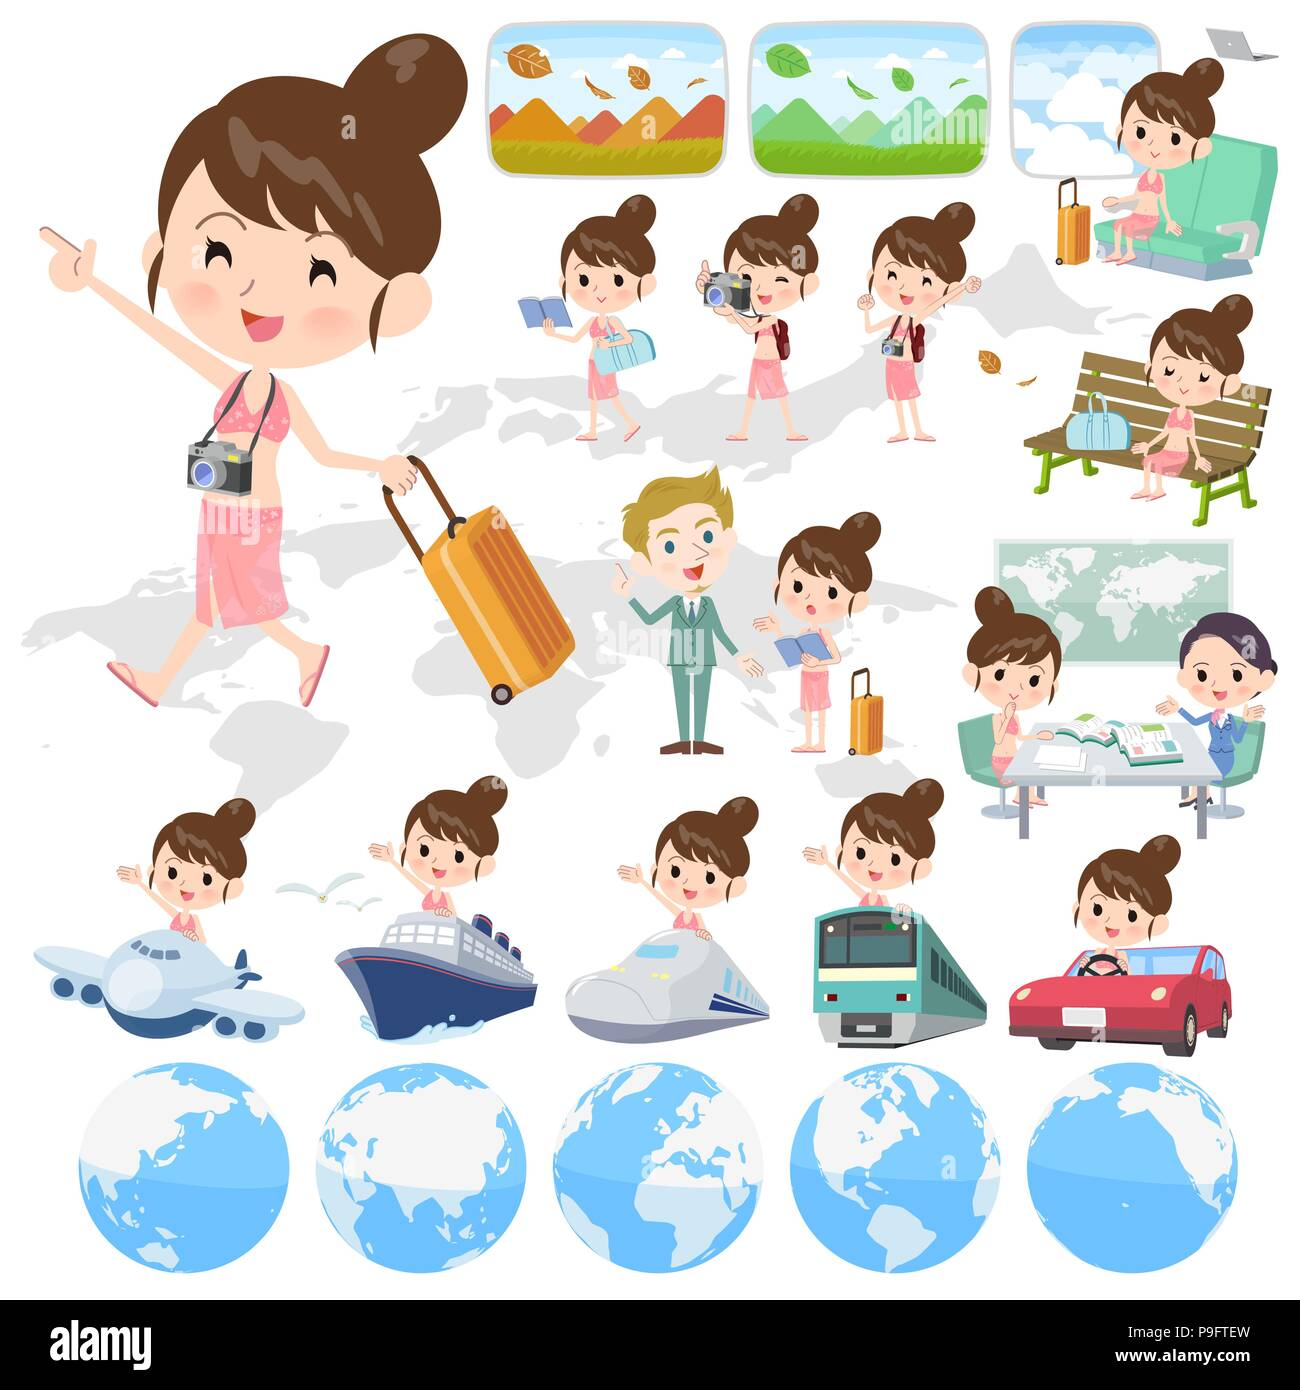 A set of swimwear style women on travel.There are also vehicles such as boats and airplanes.It's vector art so it's easy to edit. - Stock Vector